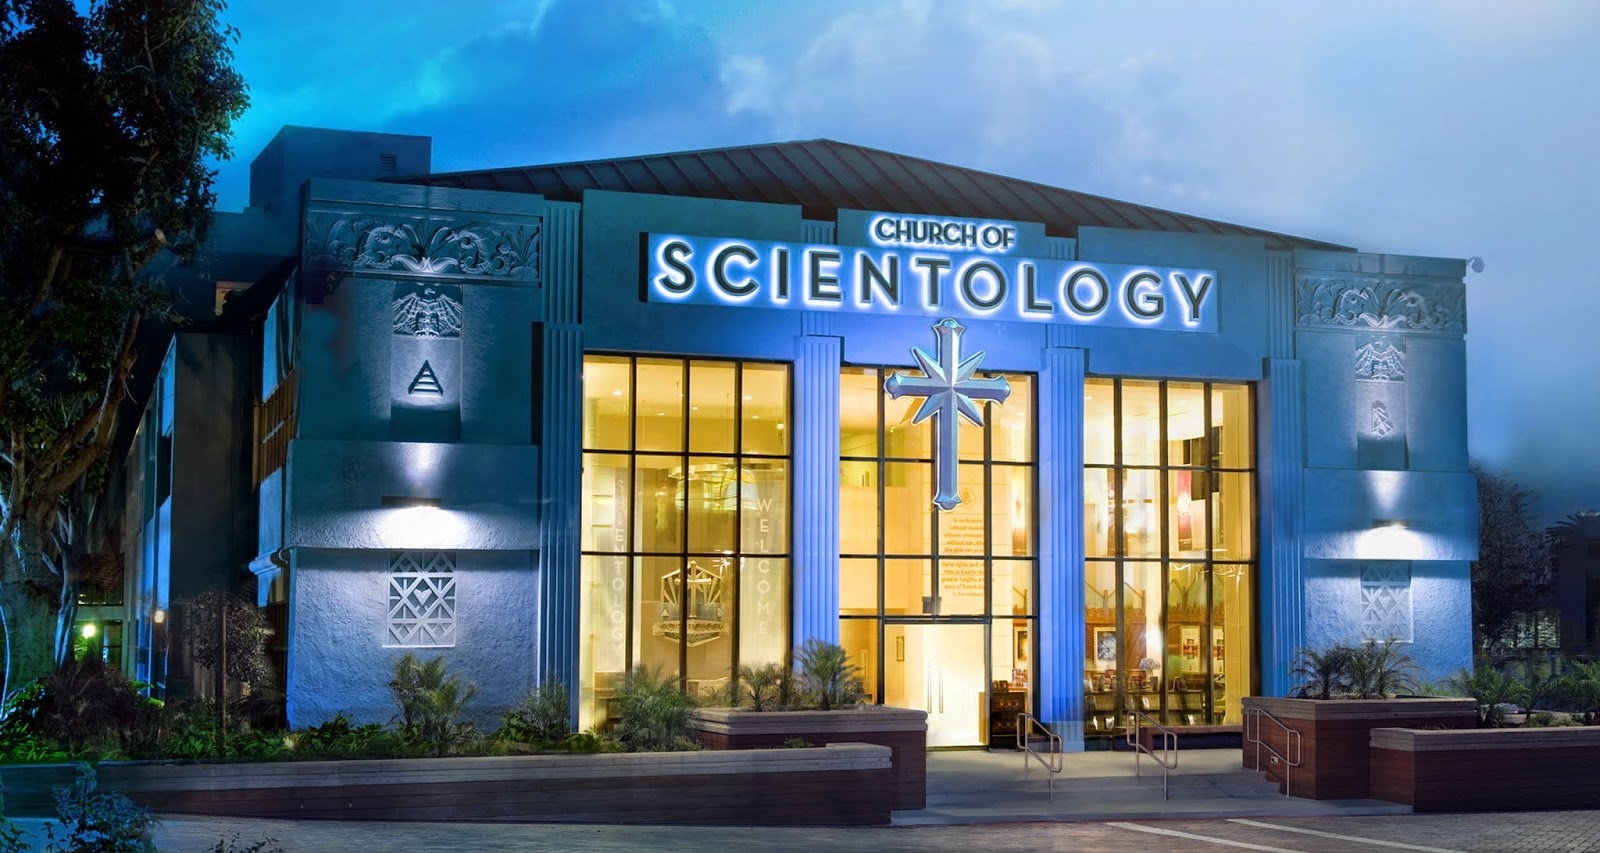 Scientology; trying to learn more about these people.?